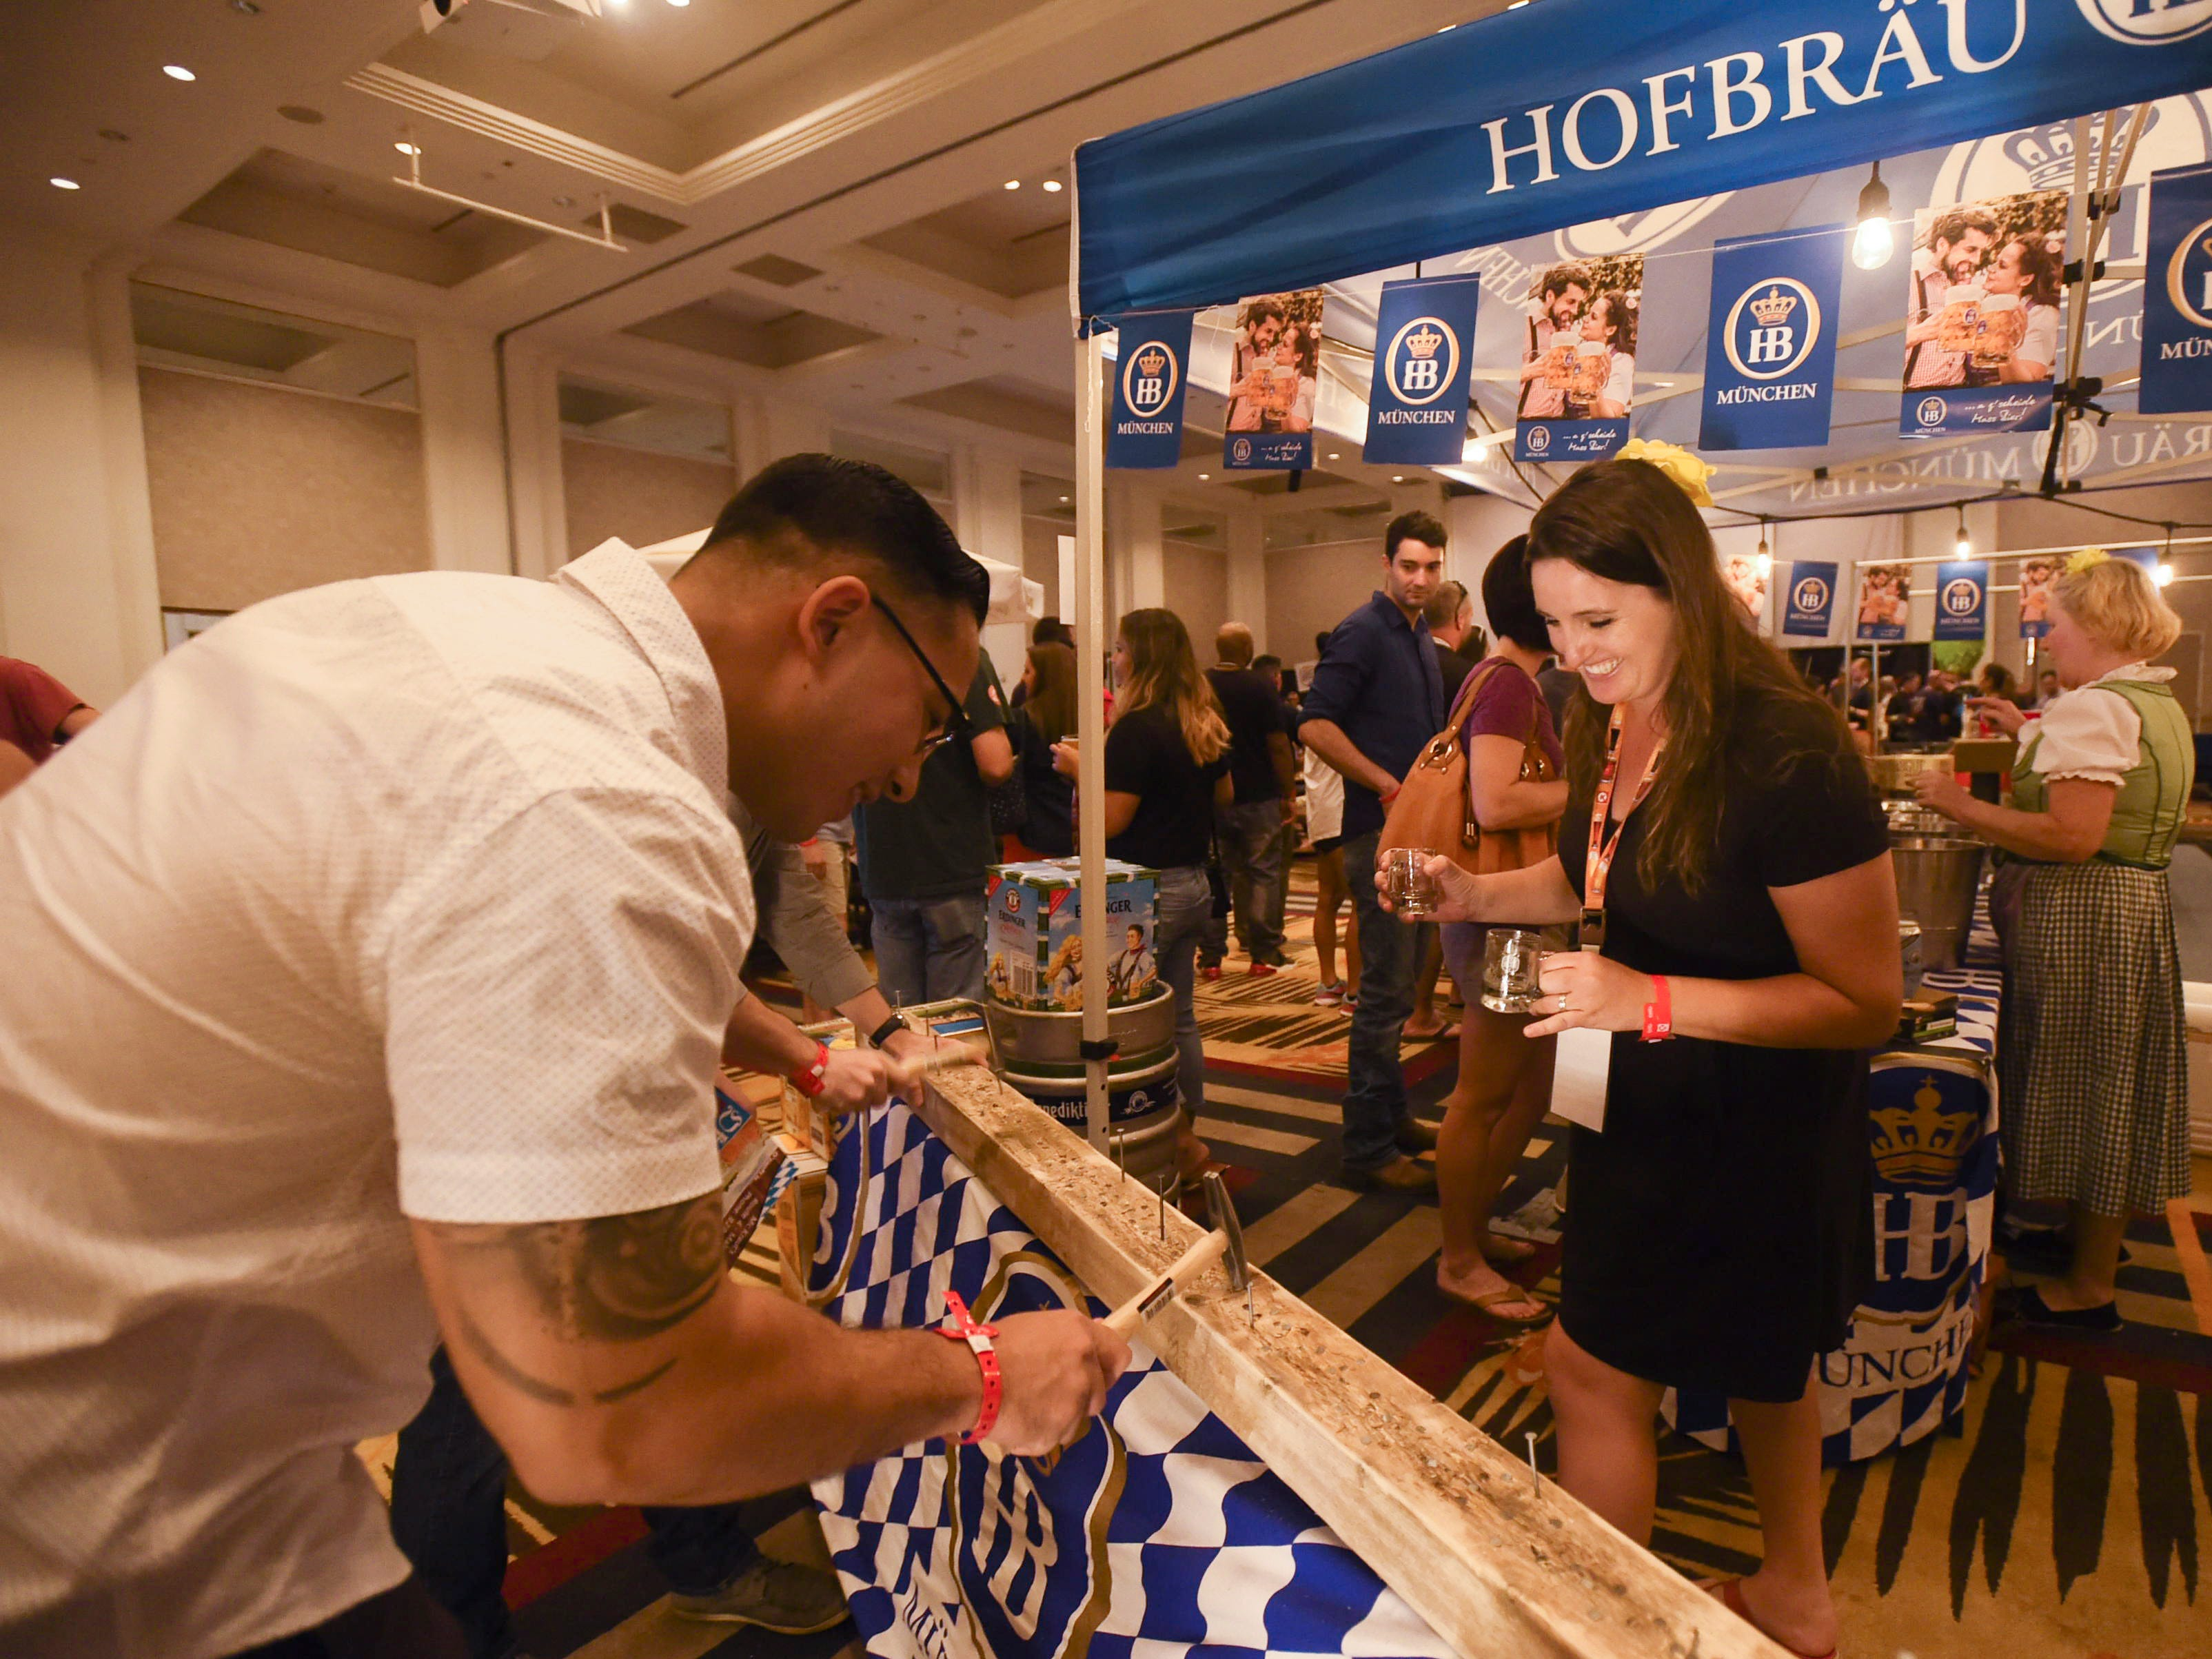 Event goers try a game of Hammerschlagen at the Hofbräu München beer booth during the Circle K Craft Beer Festival in the Sheraton Laguna Guam Resort, Sept. 29, 2018.